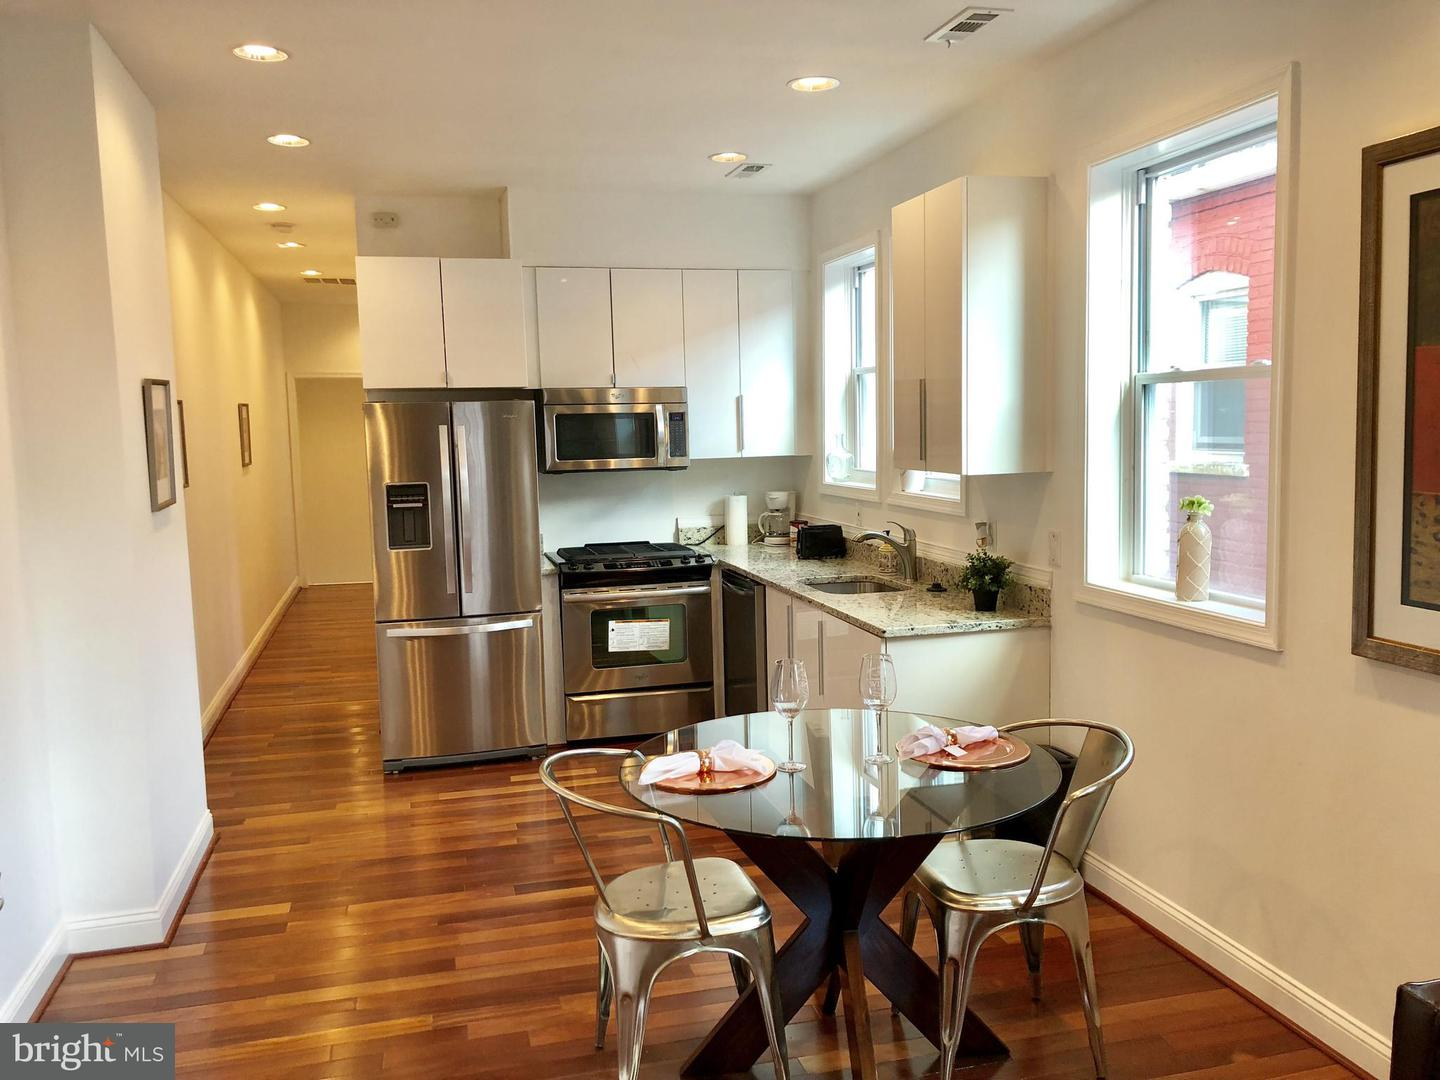 Single Family for Sale at 18 Bates St NW #2 Washington, District Of Columbia 20001 United States